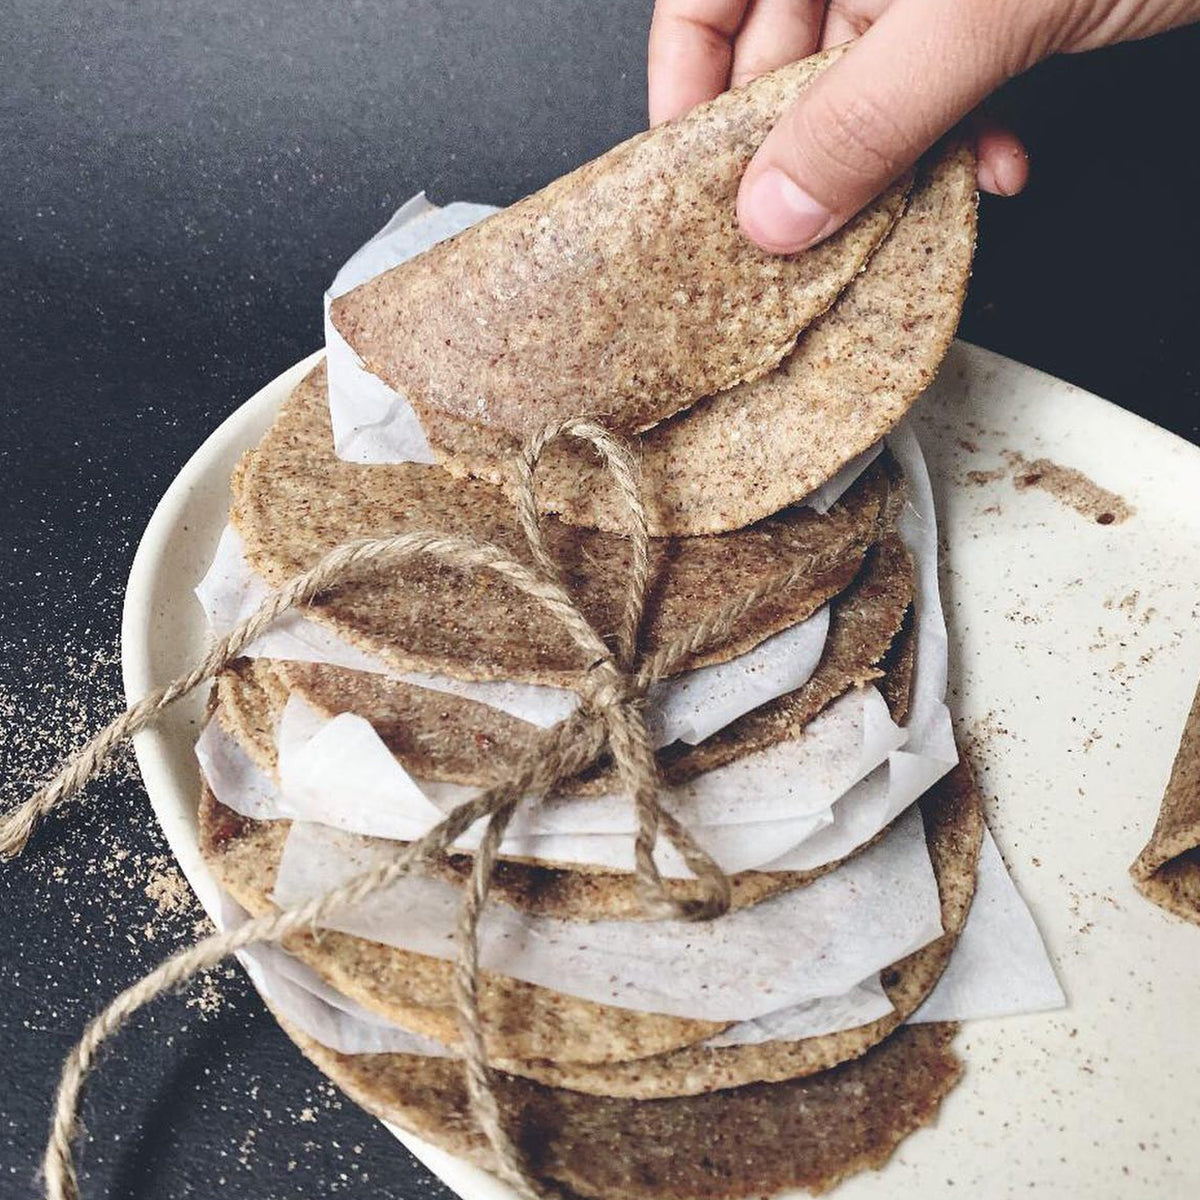 Keto Garilic Tortilla Wraps(20 Keto Garlic Tortilla Wraps)